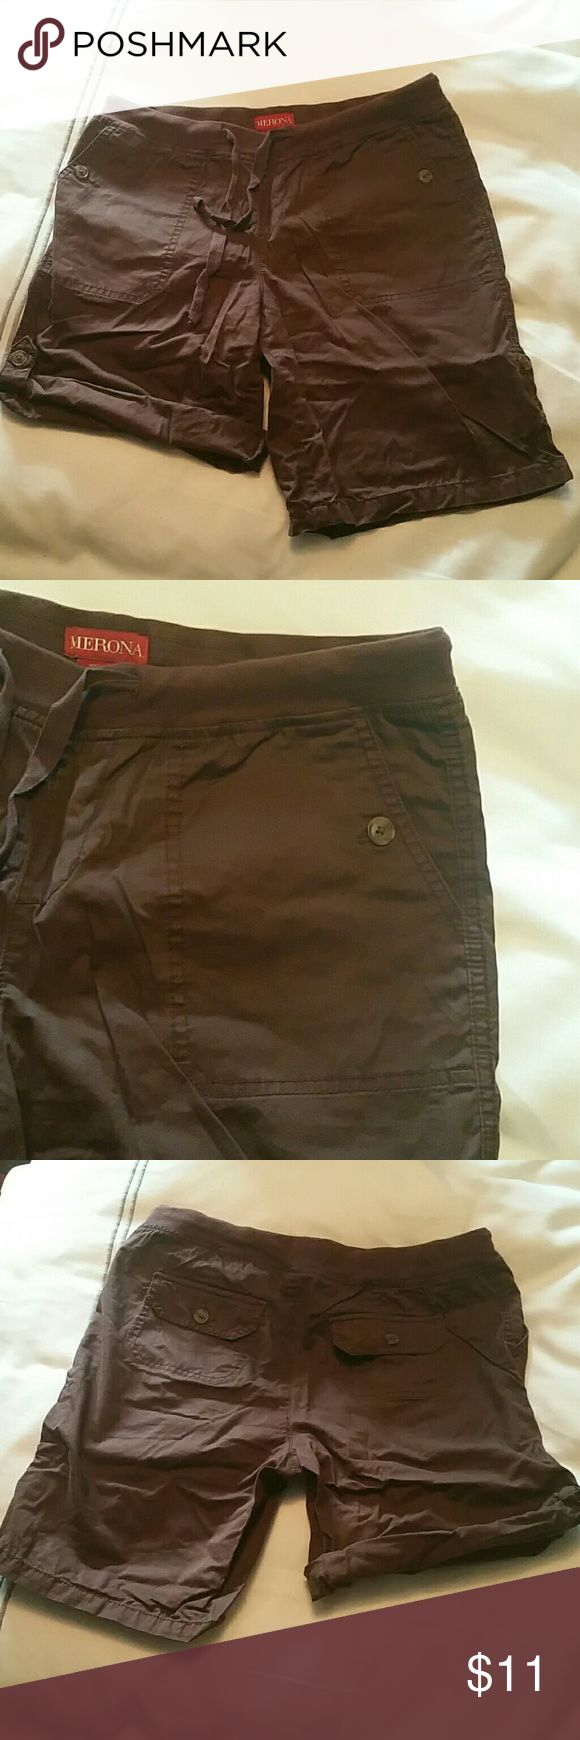 "Brown shorts Like new adjustable length brown shorts.  Stretchy waist.  Can adjust lent from 13"" to 17"".  Waist is 15.5"". Mossimo Supply Co Shorts Cargos"